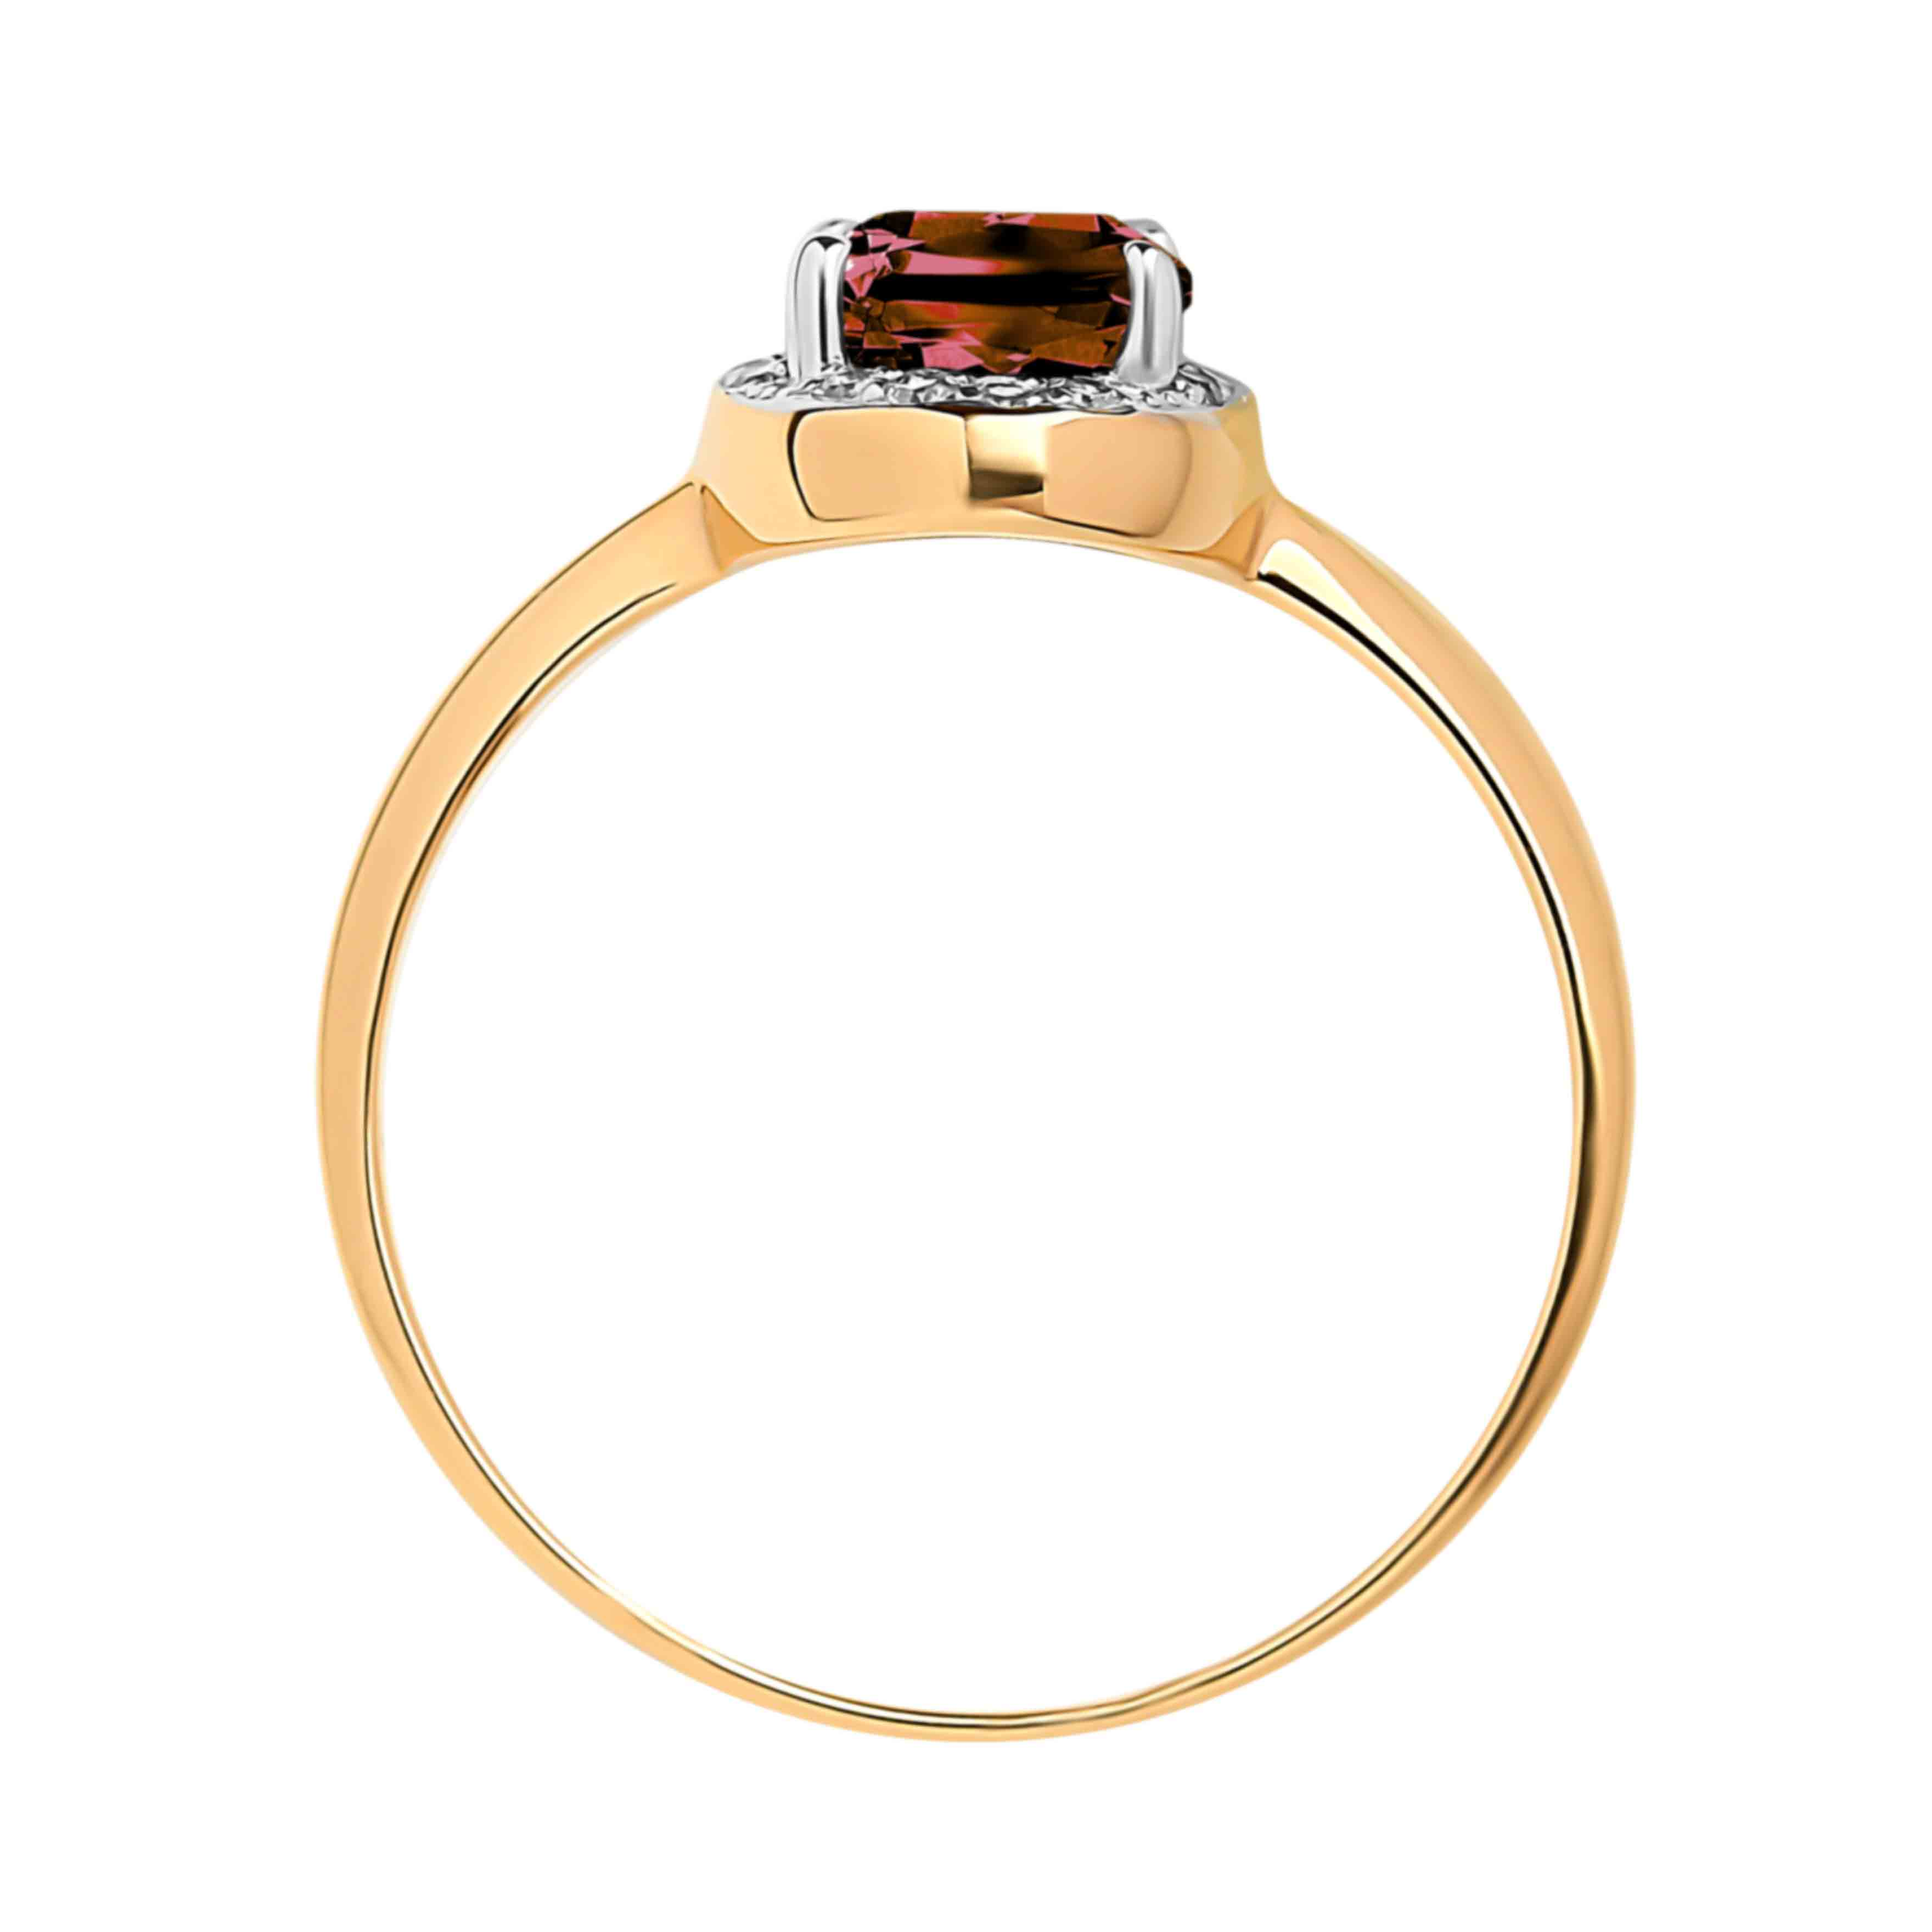 Garnet and Diamond 14kt Rose Gold Ring. View 3